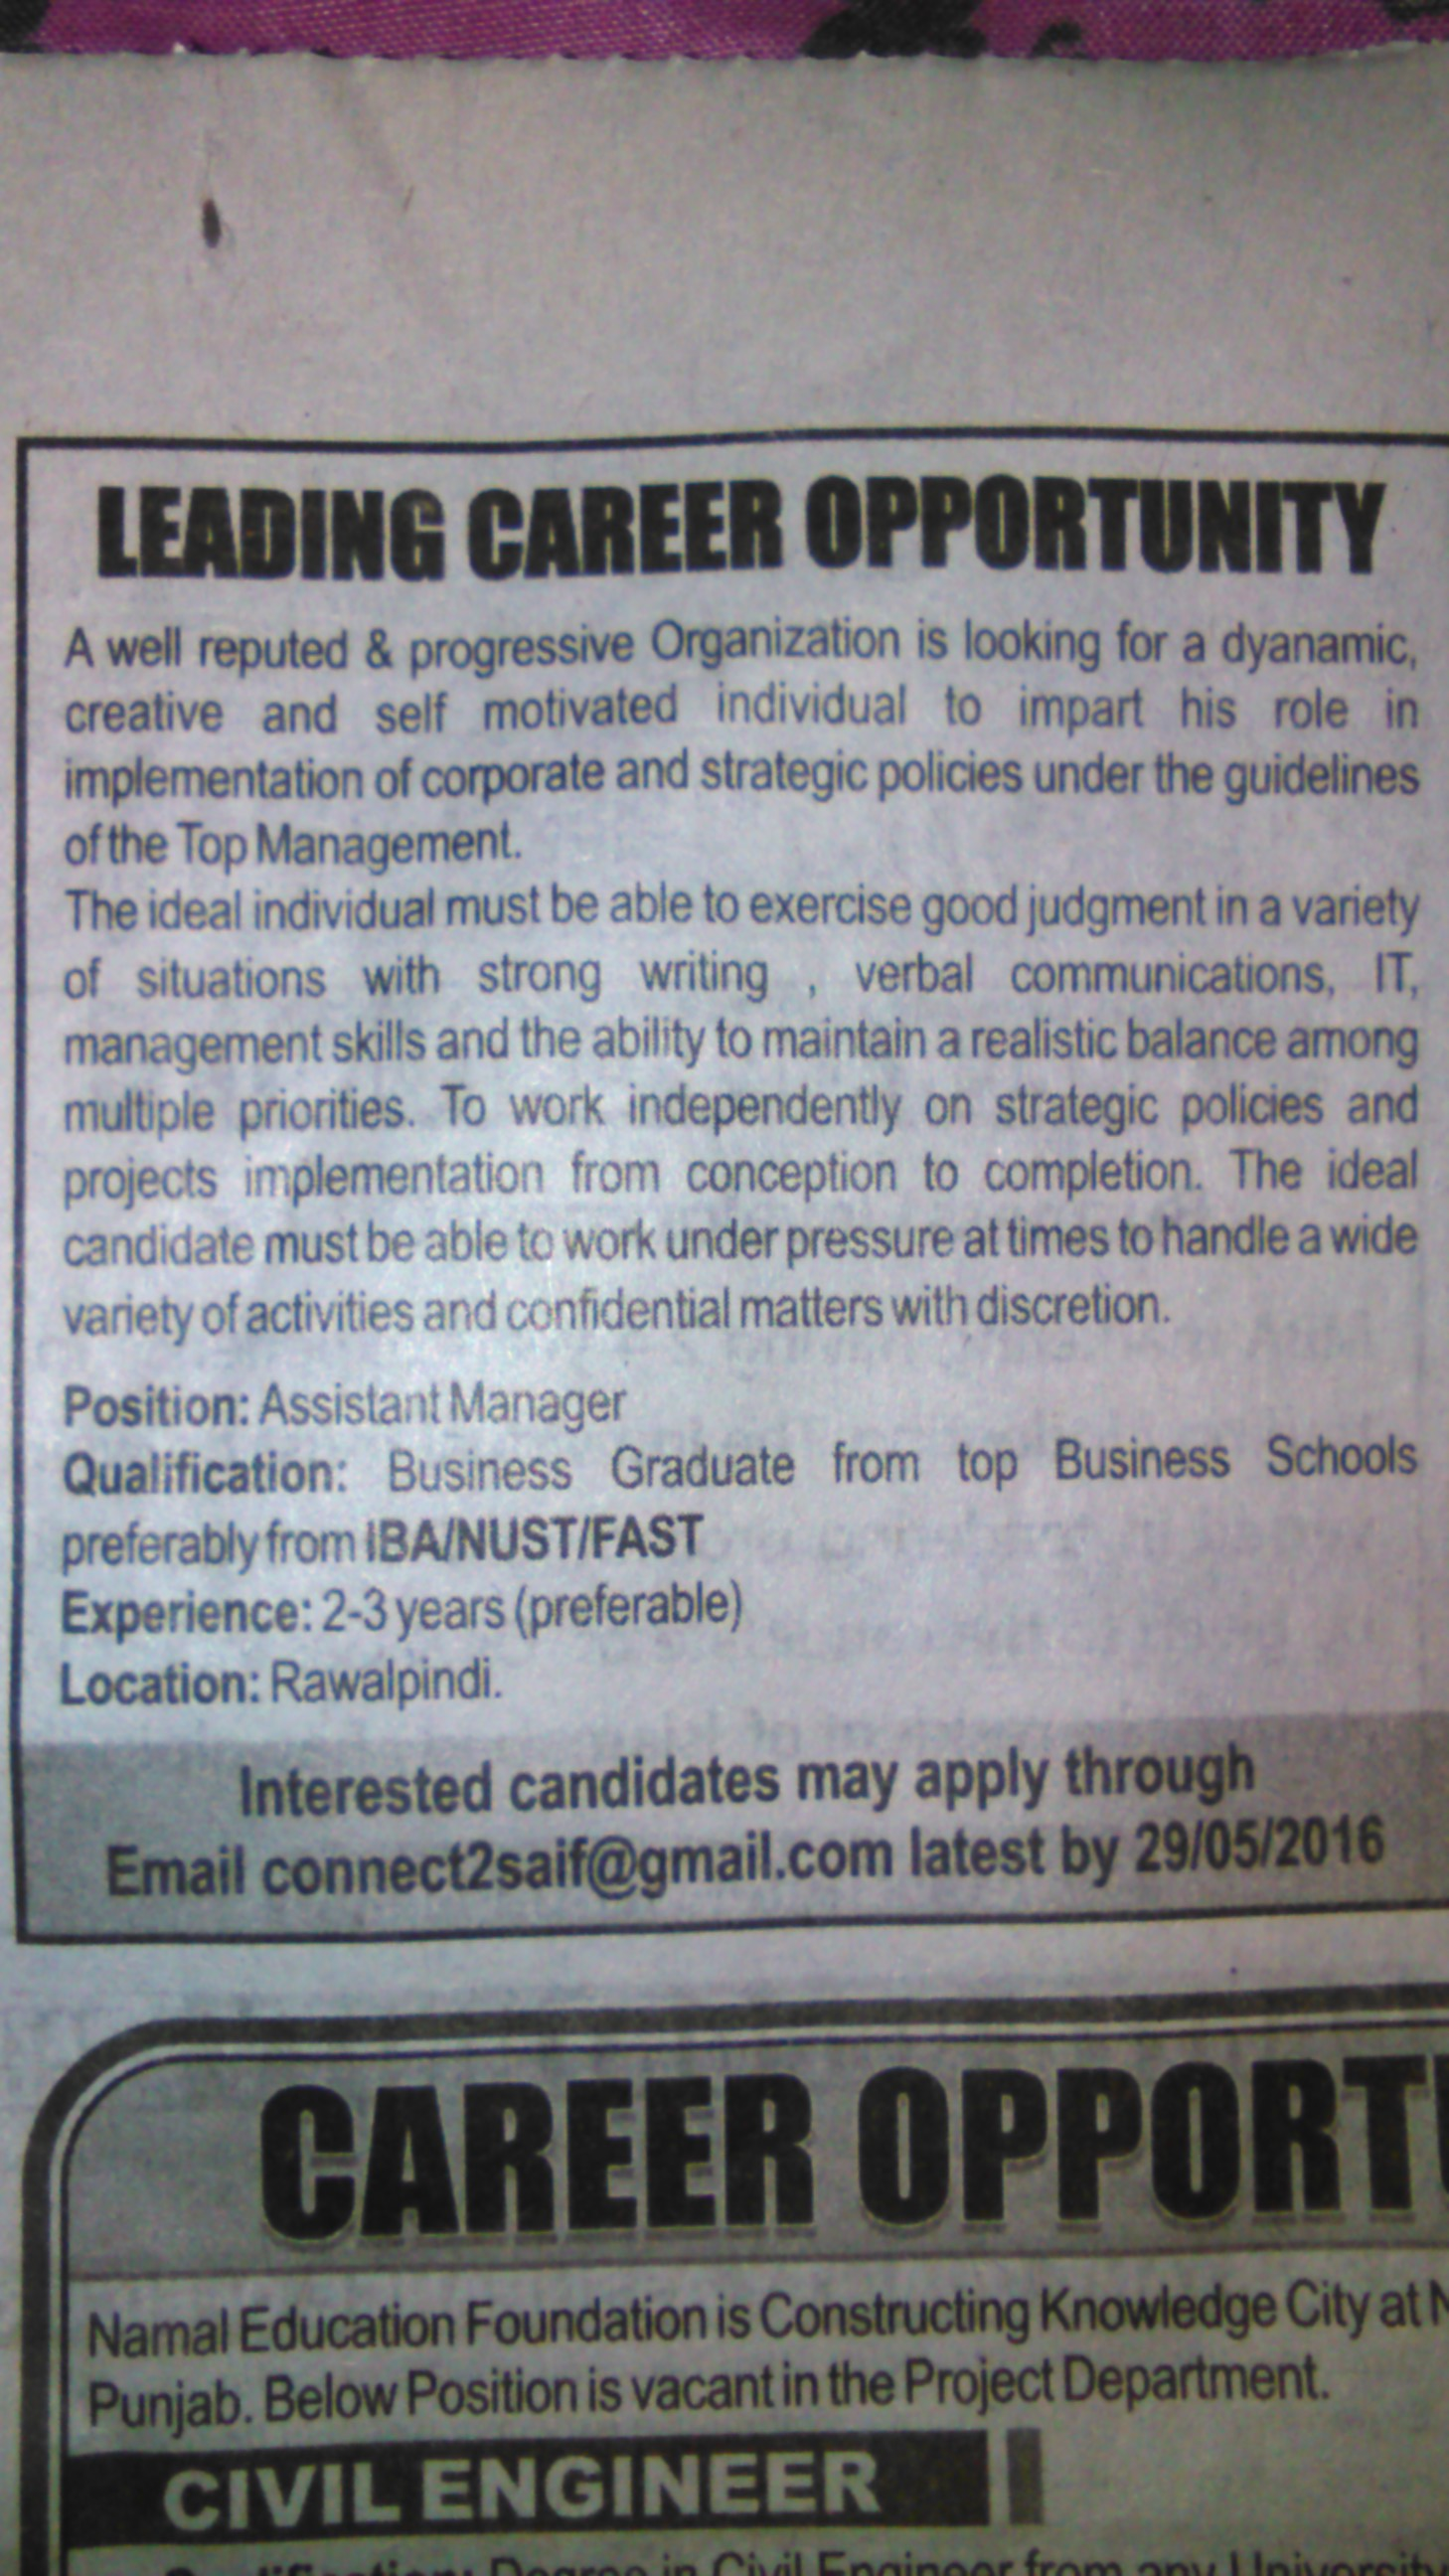 Progressive Organization Assistant Manager Required